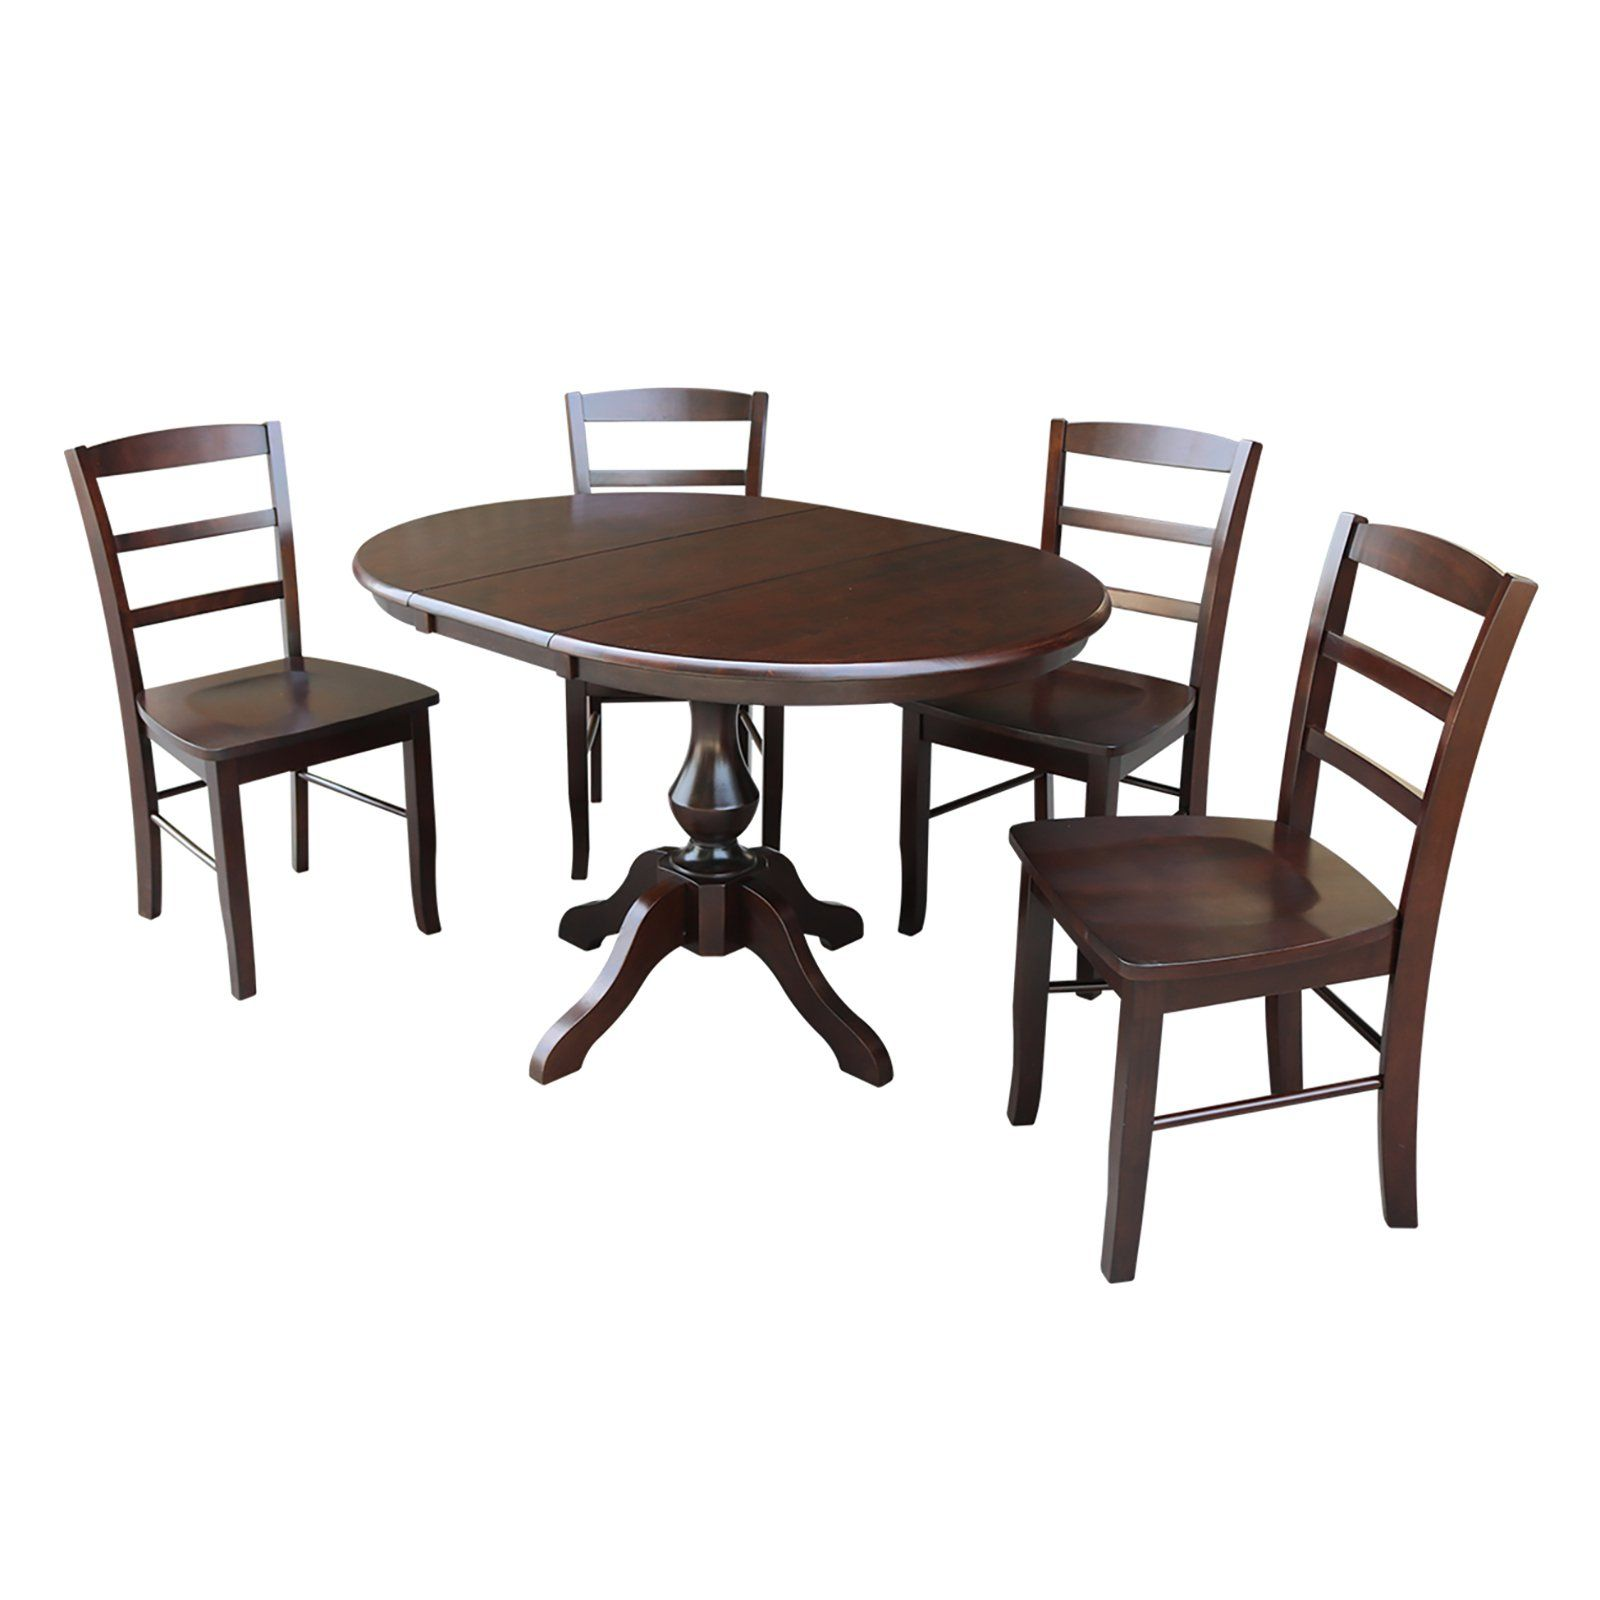 International Concepts 5 Piece Round Dining Table Set With Extension Leaf And Madrid Chairs Round Dining Table Sets Furniture Dining Table Dining Table